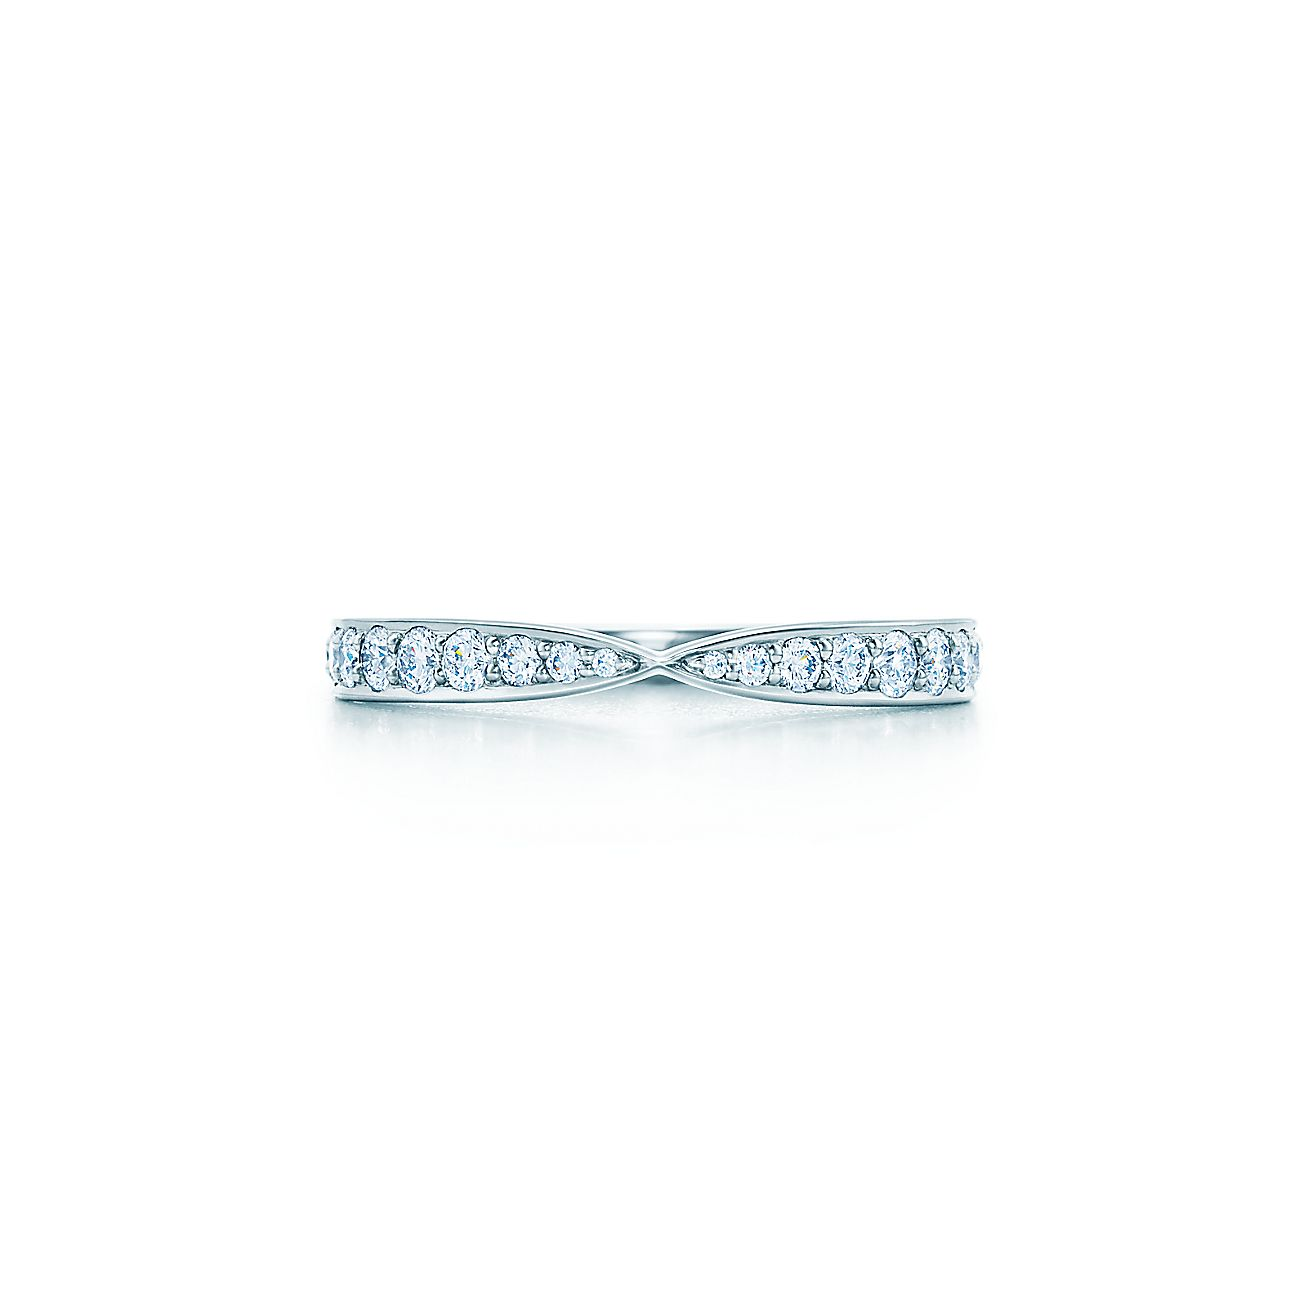 Tiffany HarmonyR Ring In Platinum With Bead Set Diamonds